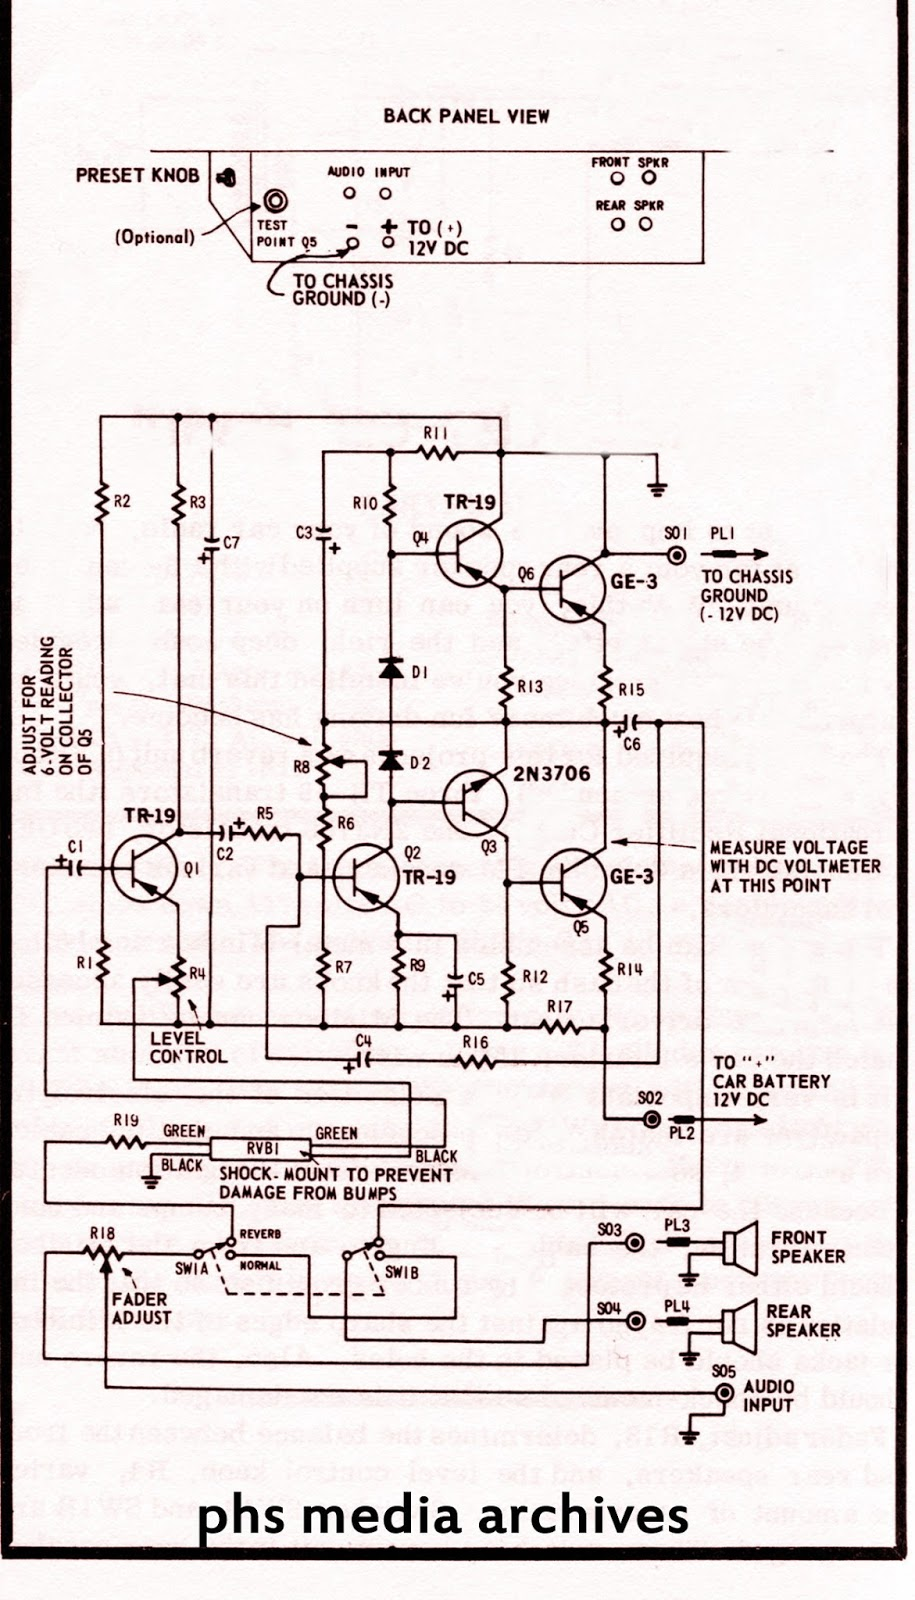 hight resolution of dm007 quadcopter wiring diagram explorer schematic diagram power window circuit diagram of 1966 oldsmobile 33000 series